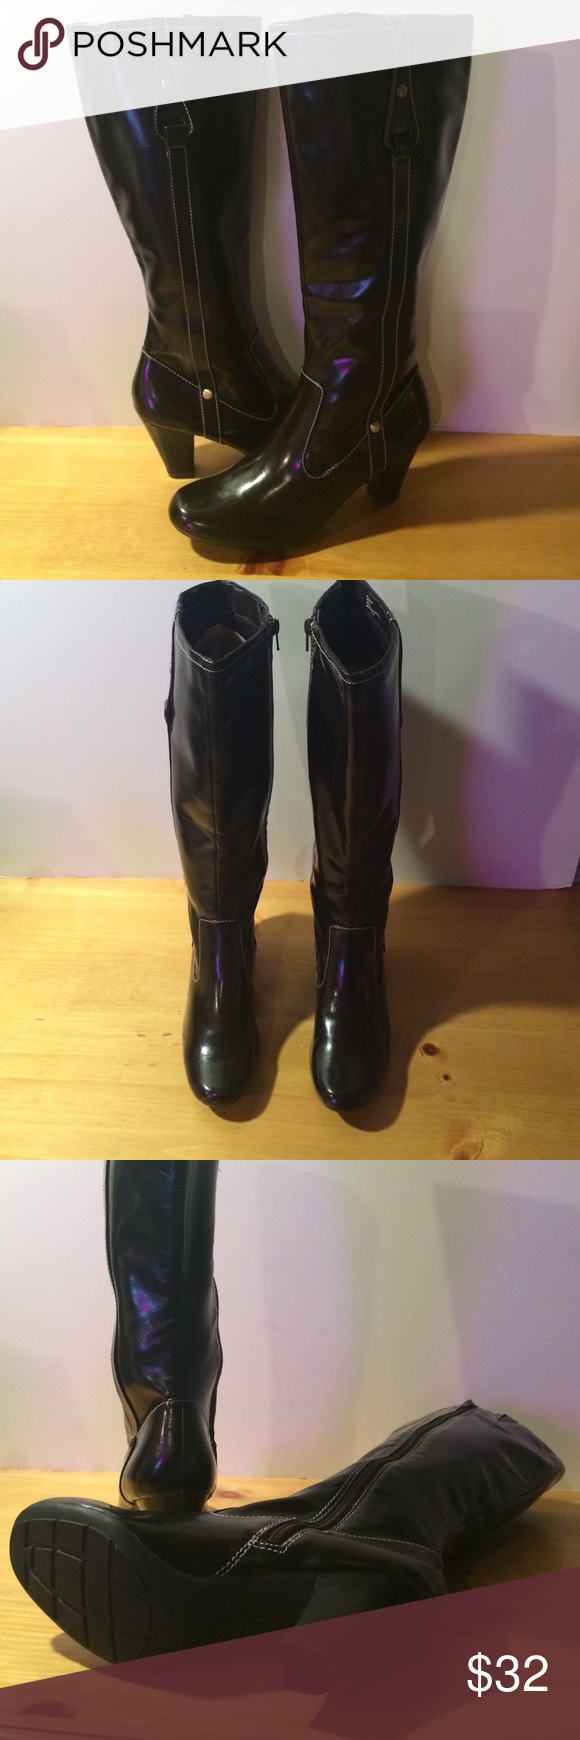 Women's size 8.5M Brown Natural Soul Tall Boots Women's size 8.5M brown Natural Soul, by Naturalizer tall boots. See photos and please message with any questions :) Naturalizer Shoes Heeled Boots